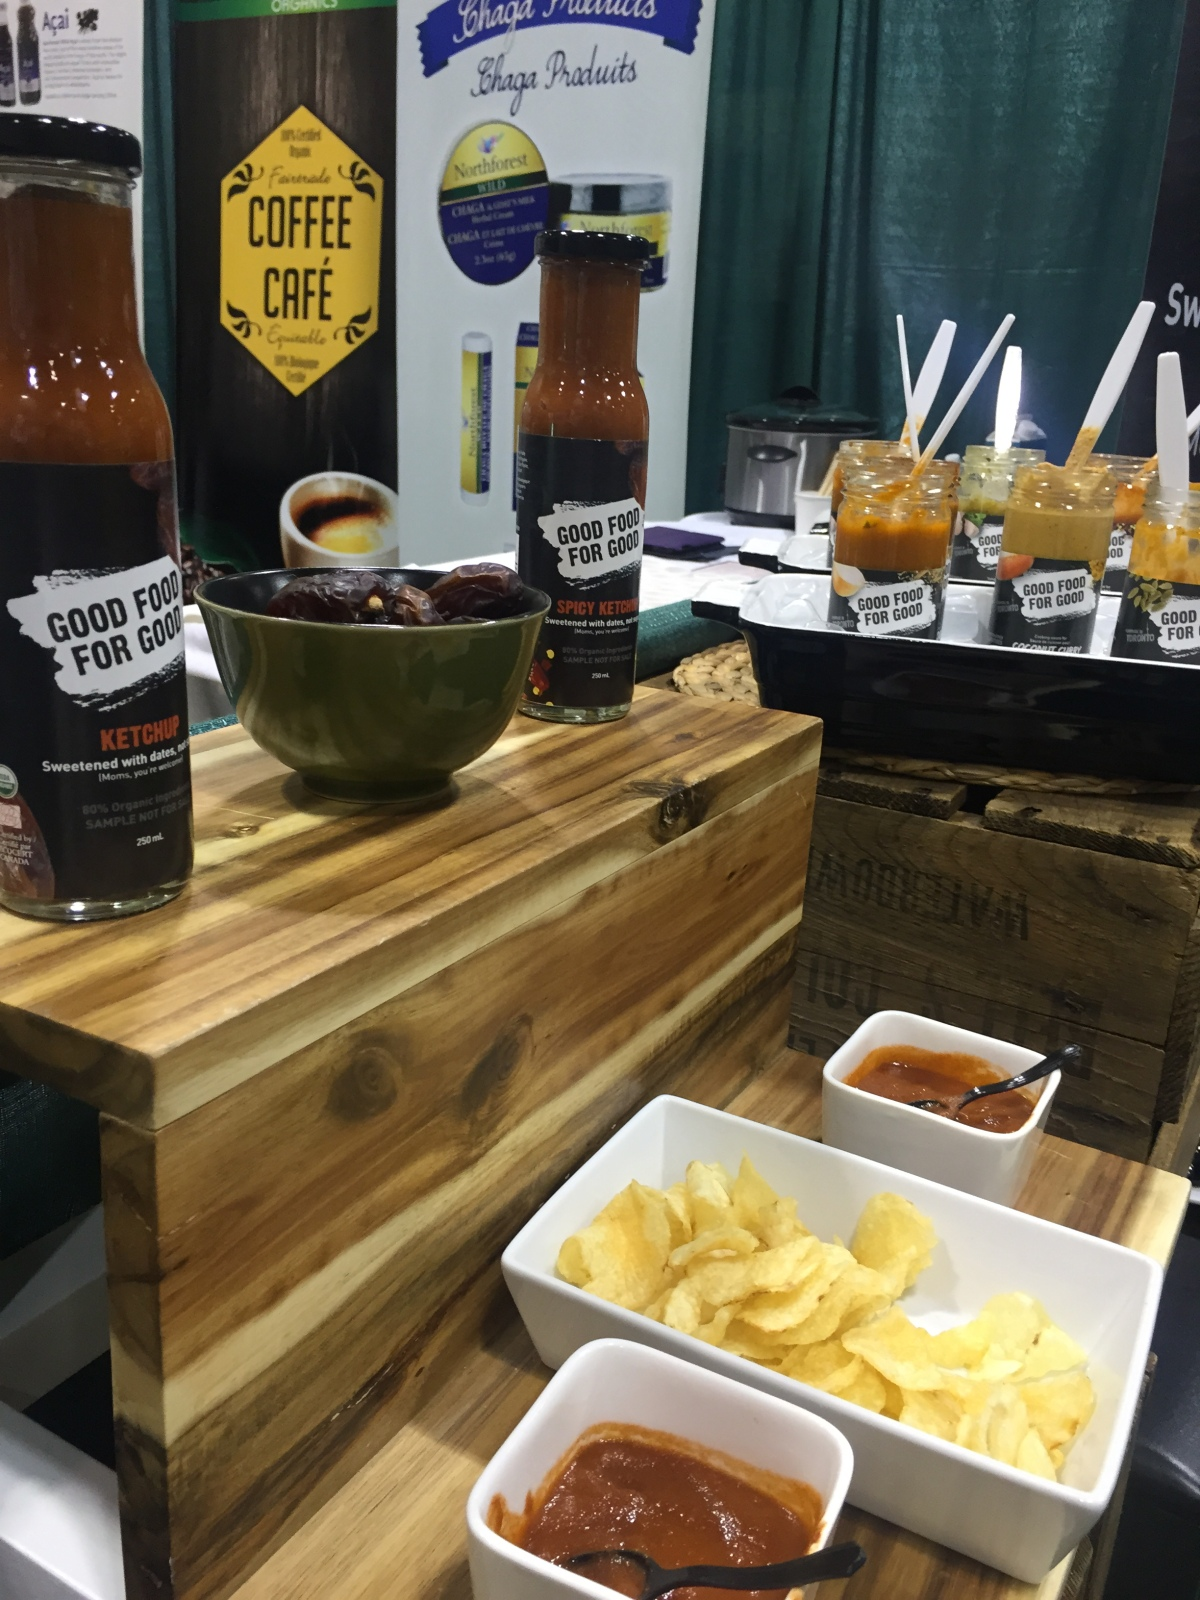 CHFA East 2015 - Good Food for Good | Ketchup sweetened with dates